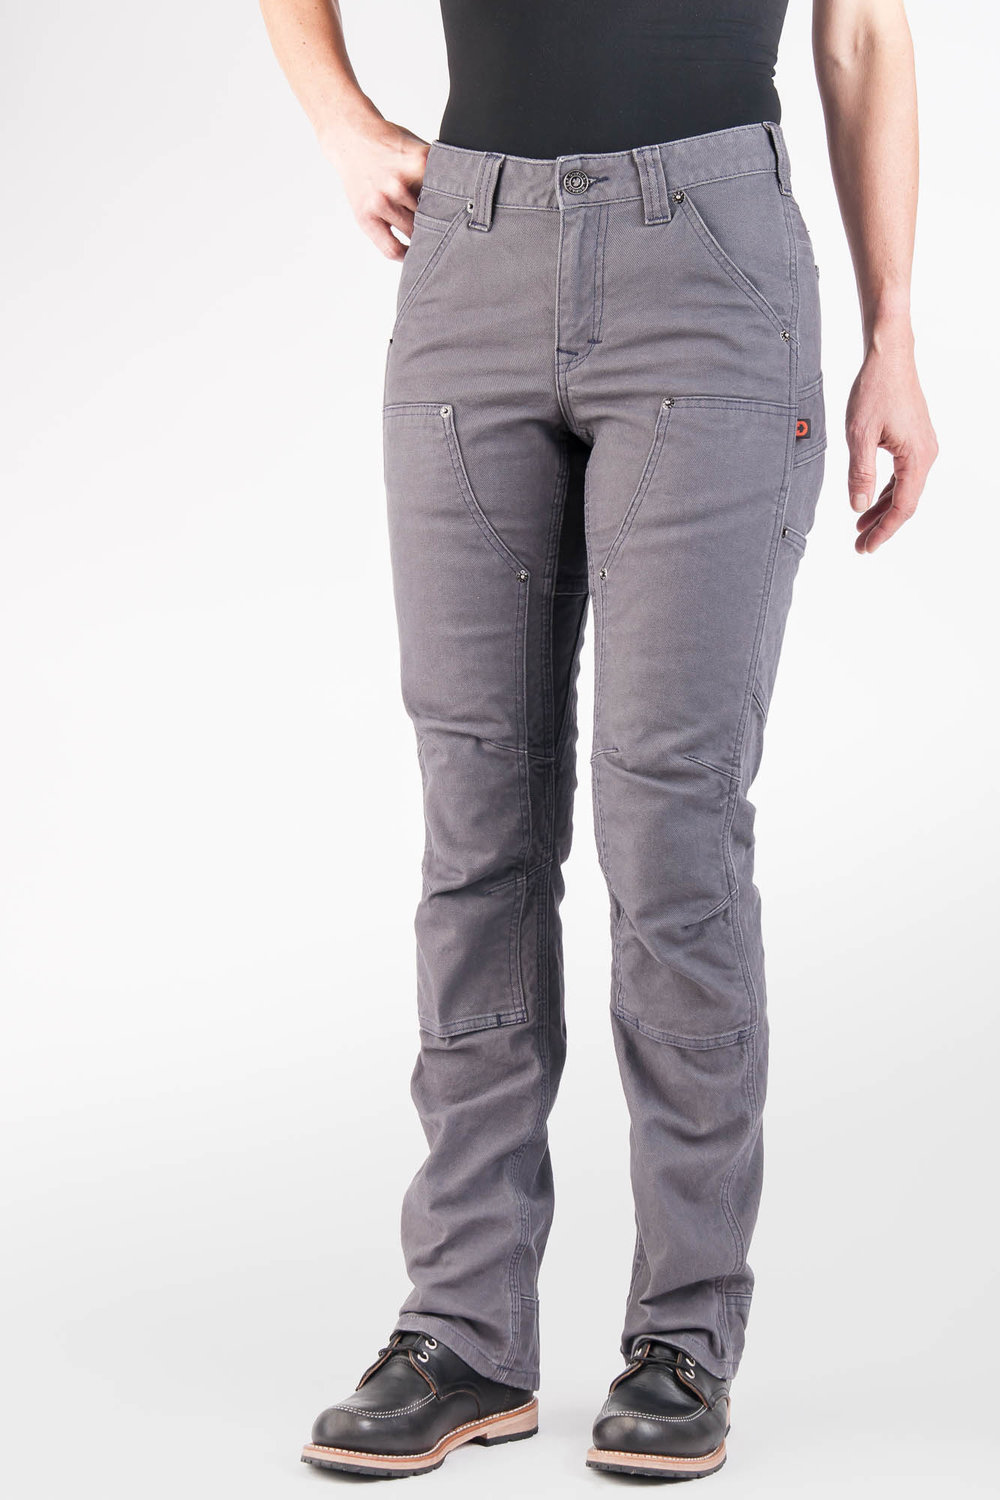 Britt Utility Grey Canvas